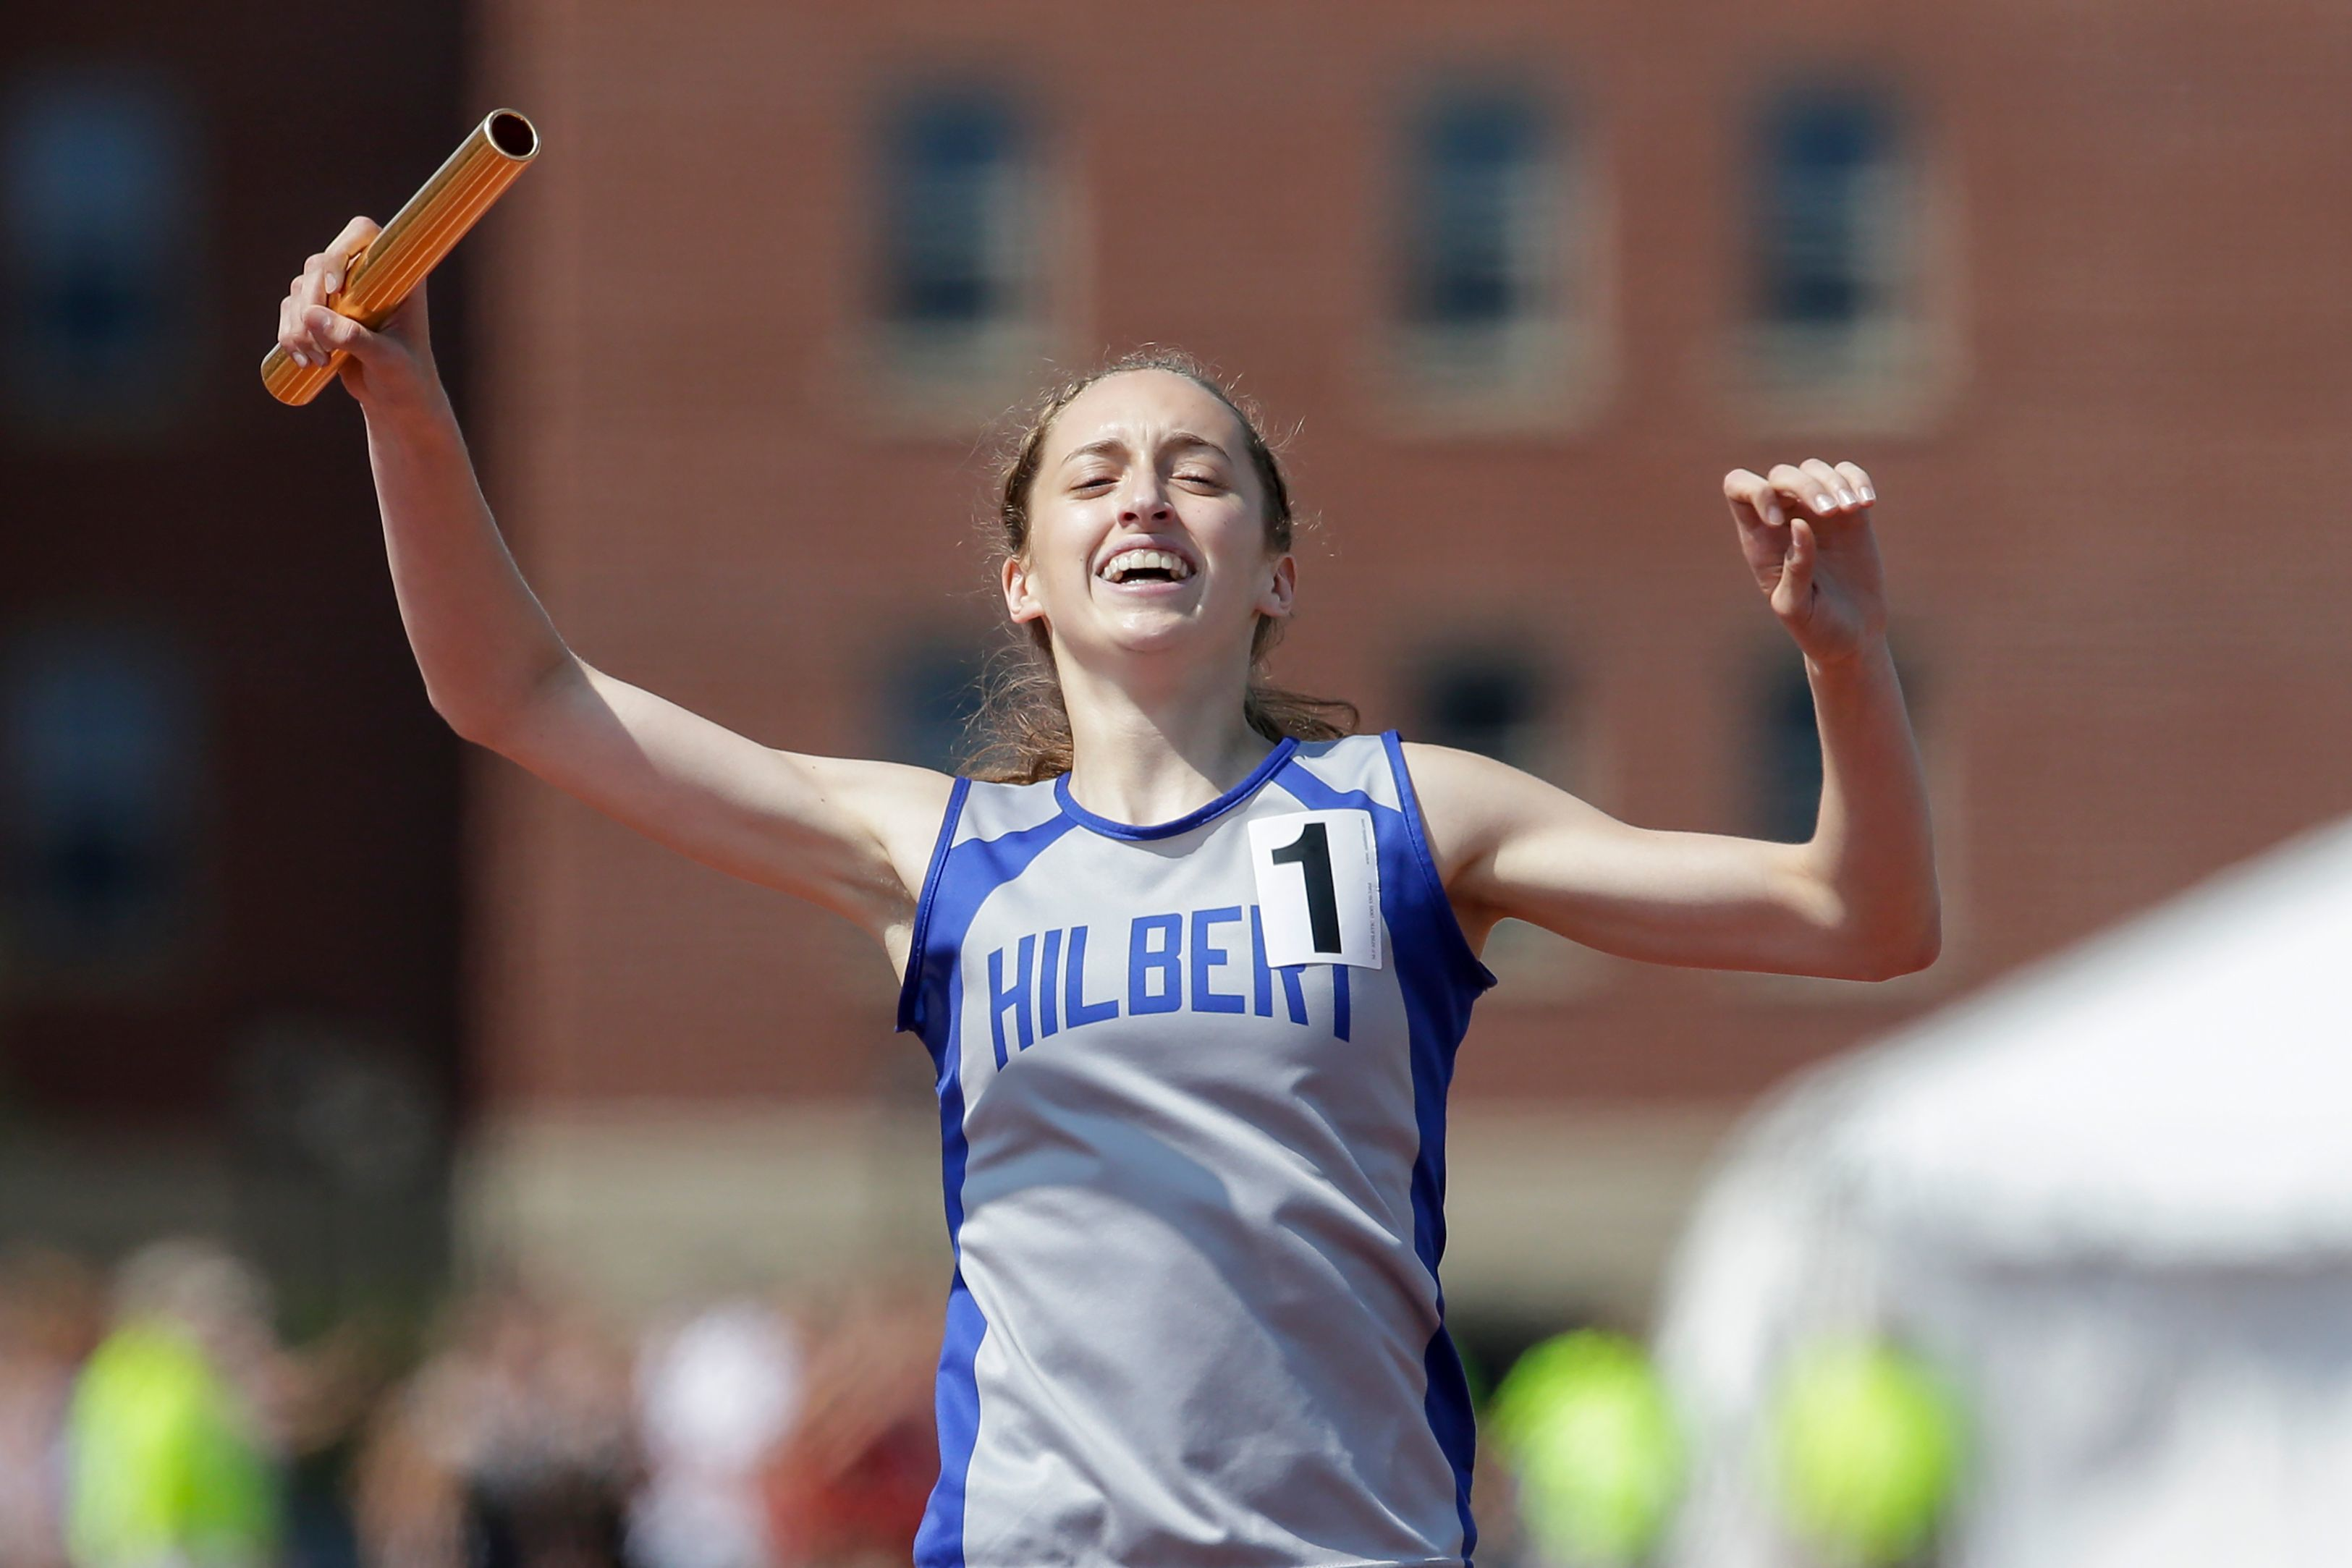 Makaylee Kuhn of Hilbert hopes to return in time for regionals after missing all of the track and field season due to a knee injury during basketball.